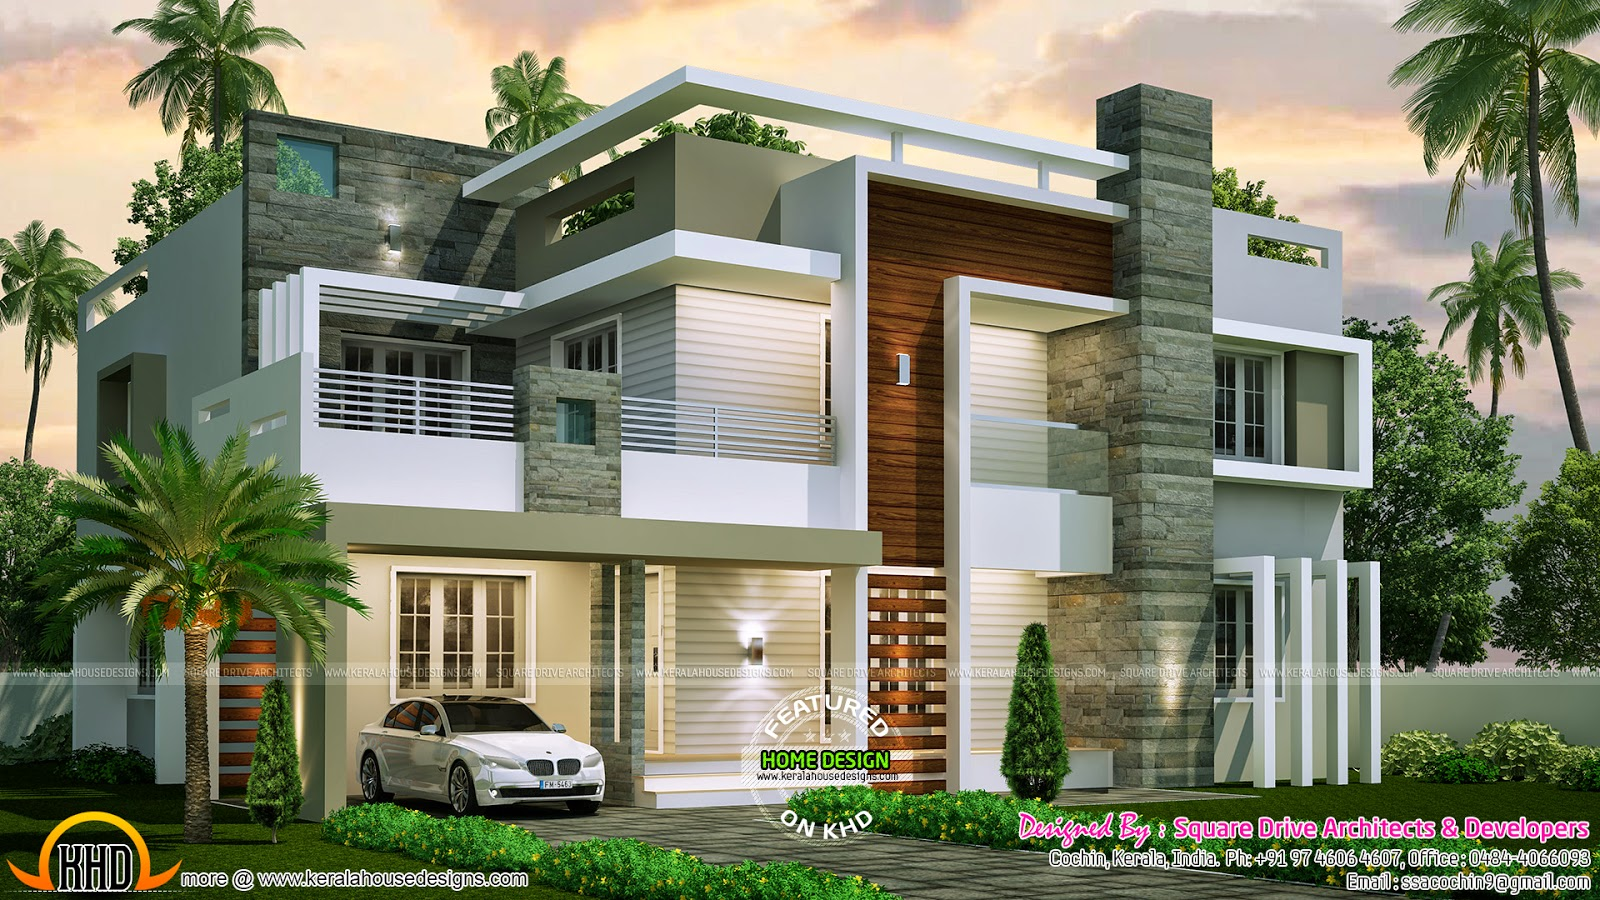 4 bedroom contemporary home design kerala home design for Beautiful contemporary house designs